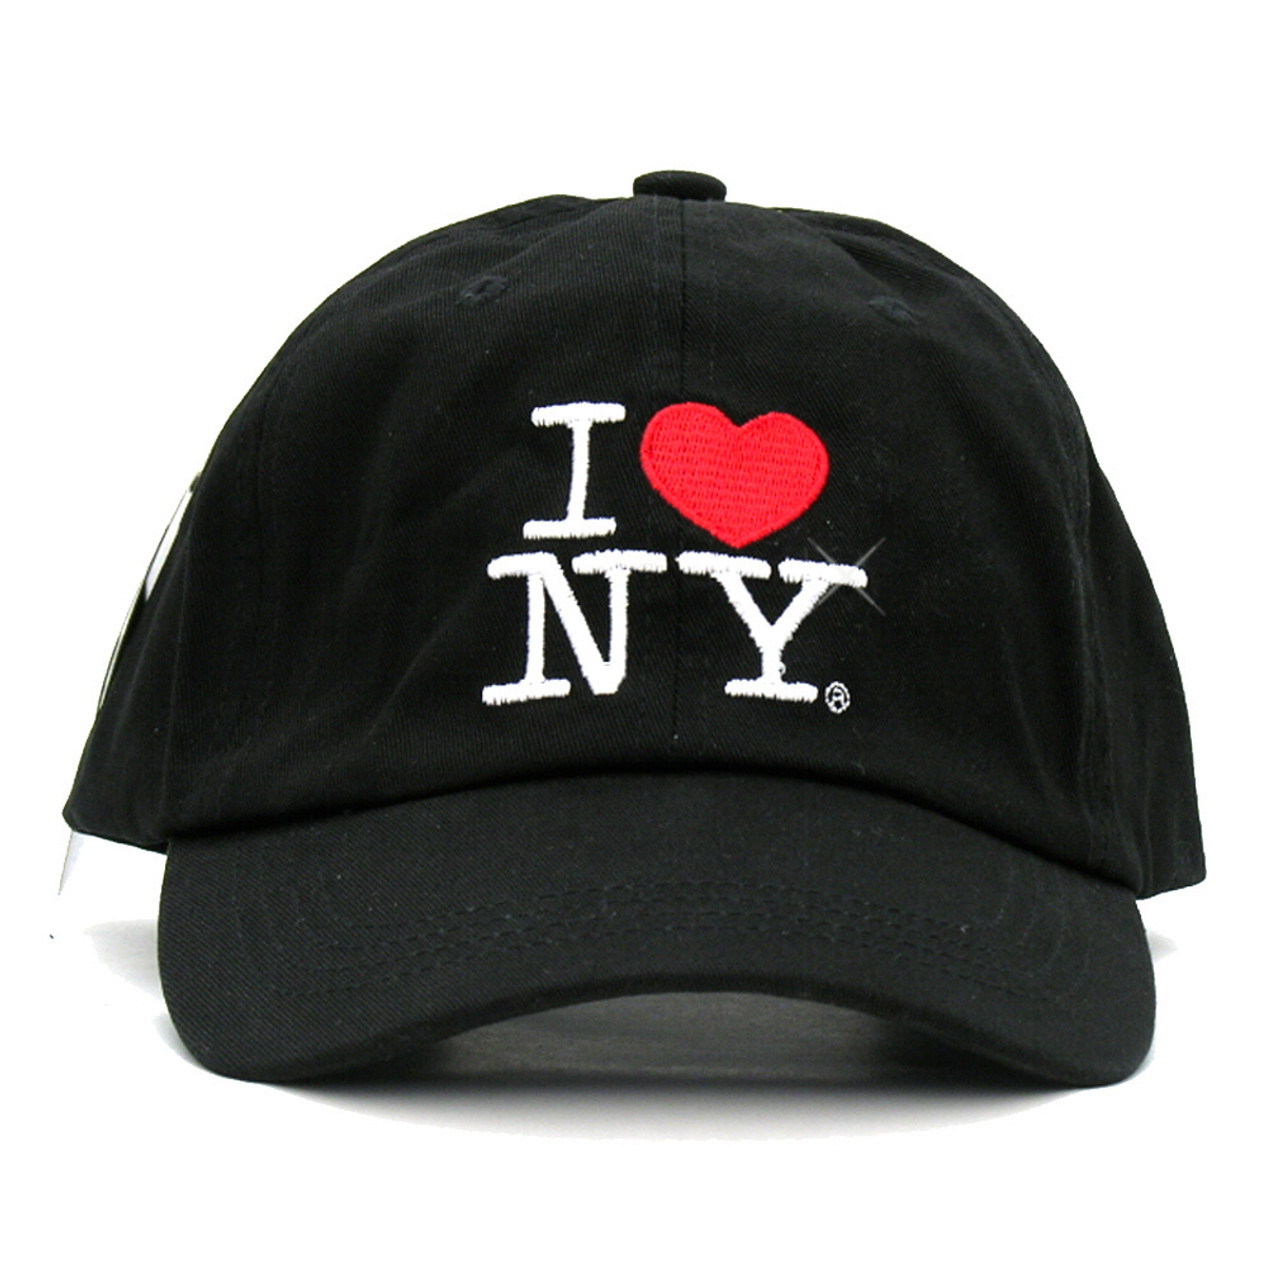 37f89dbd925 I Love NY Cap - Black. Brand   Clothing